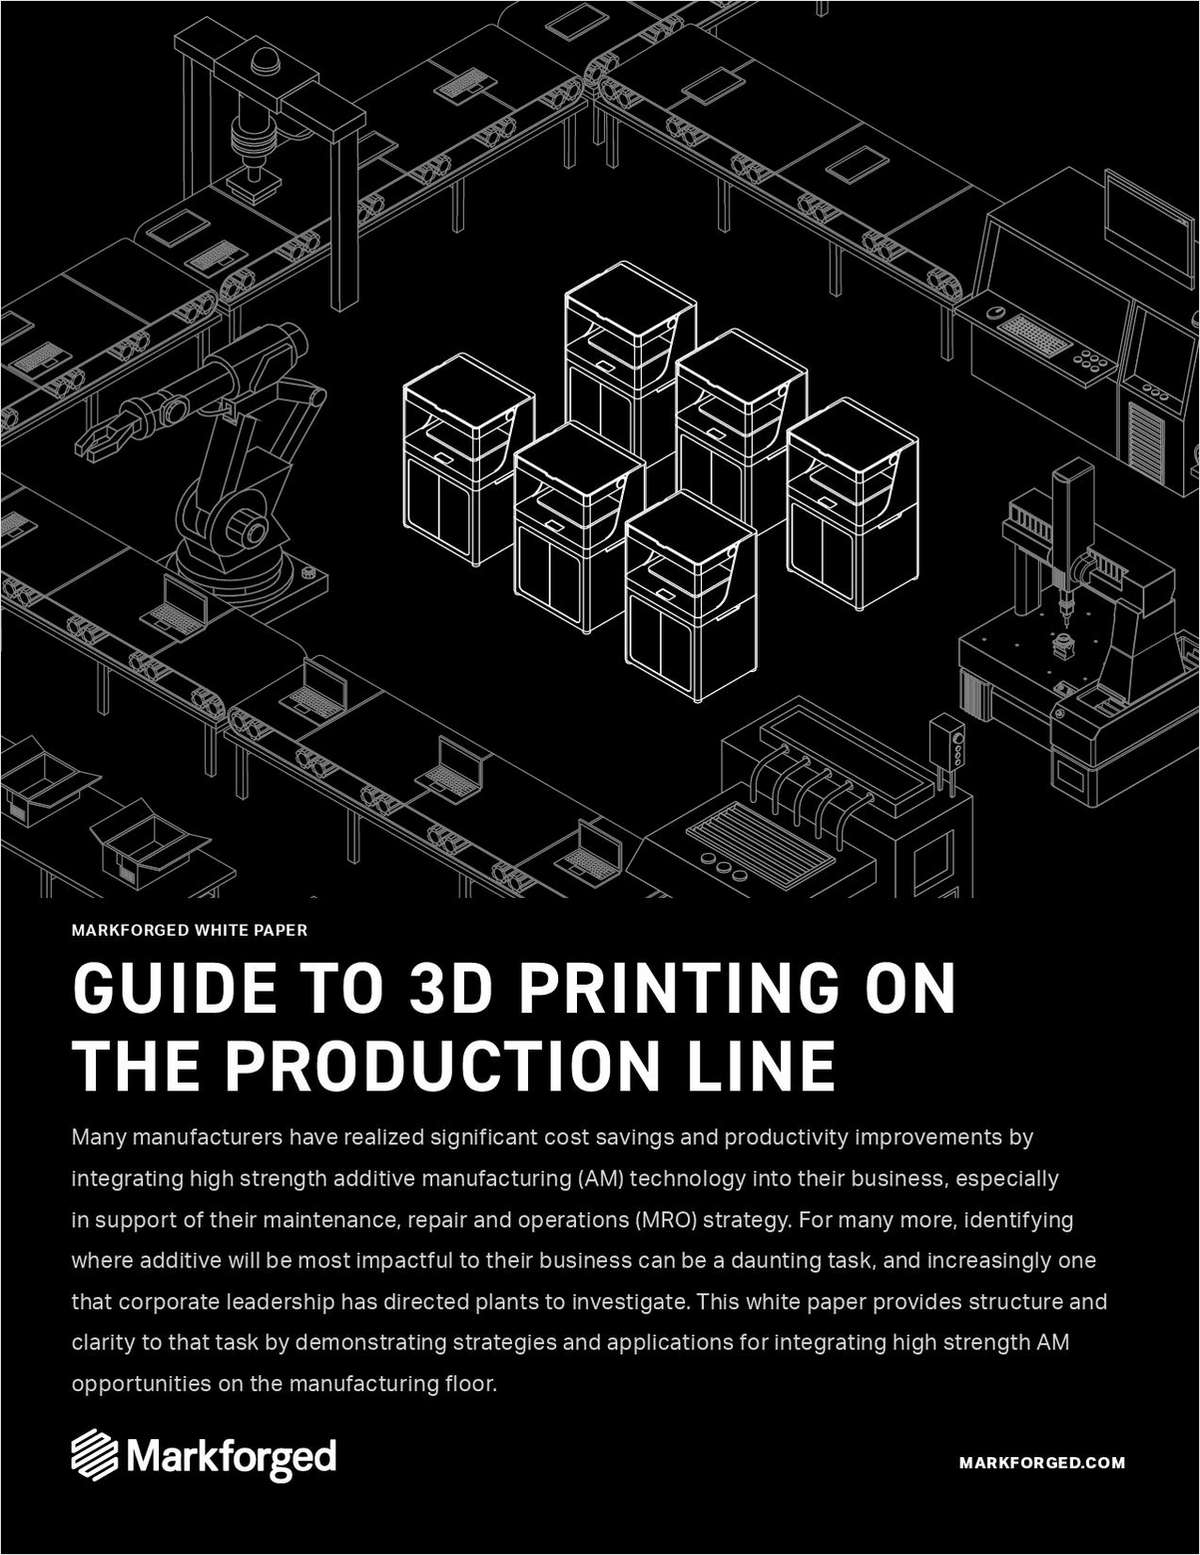 Guide to 3D Printing on the Production Line